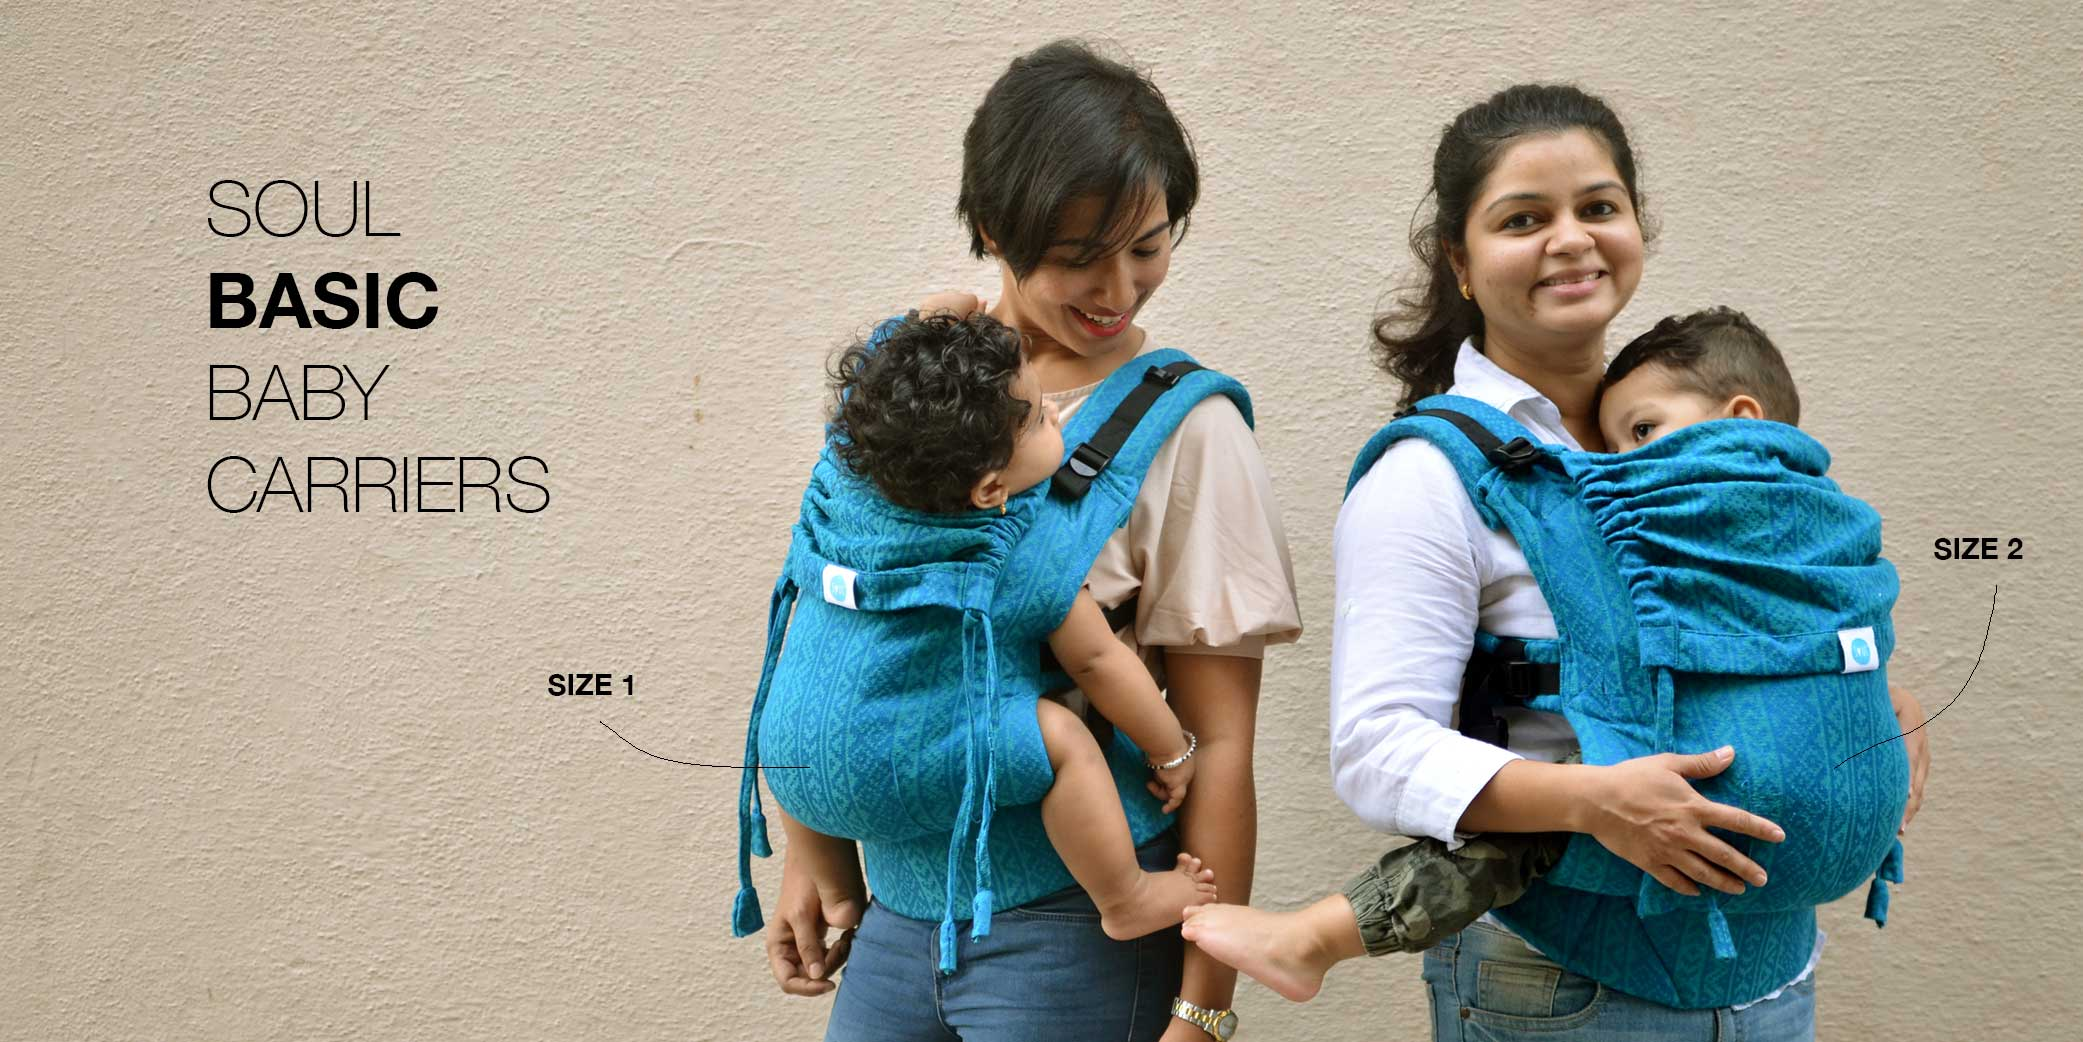 Soul Baby Carriers - Basic